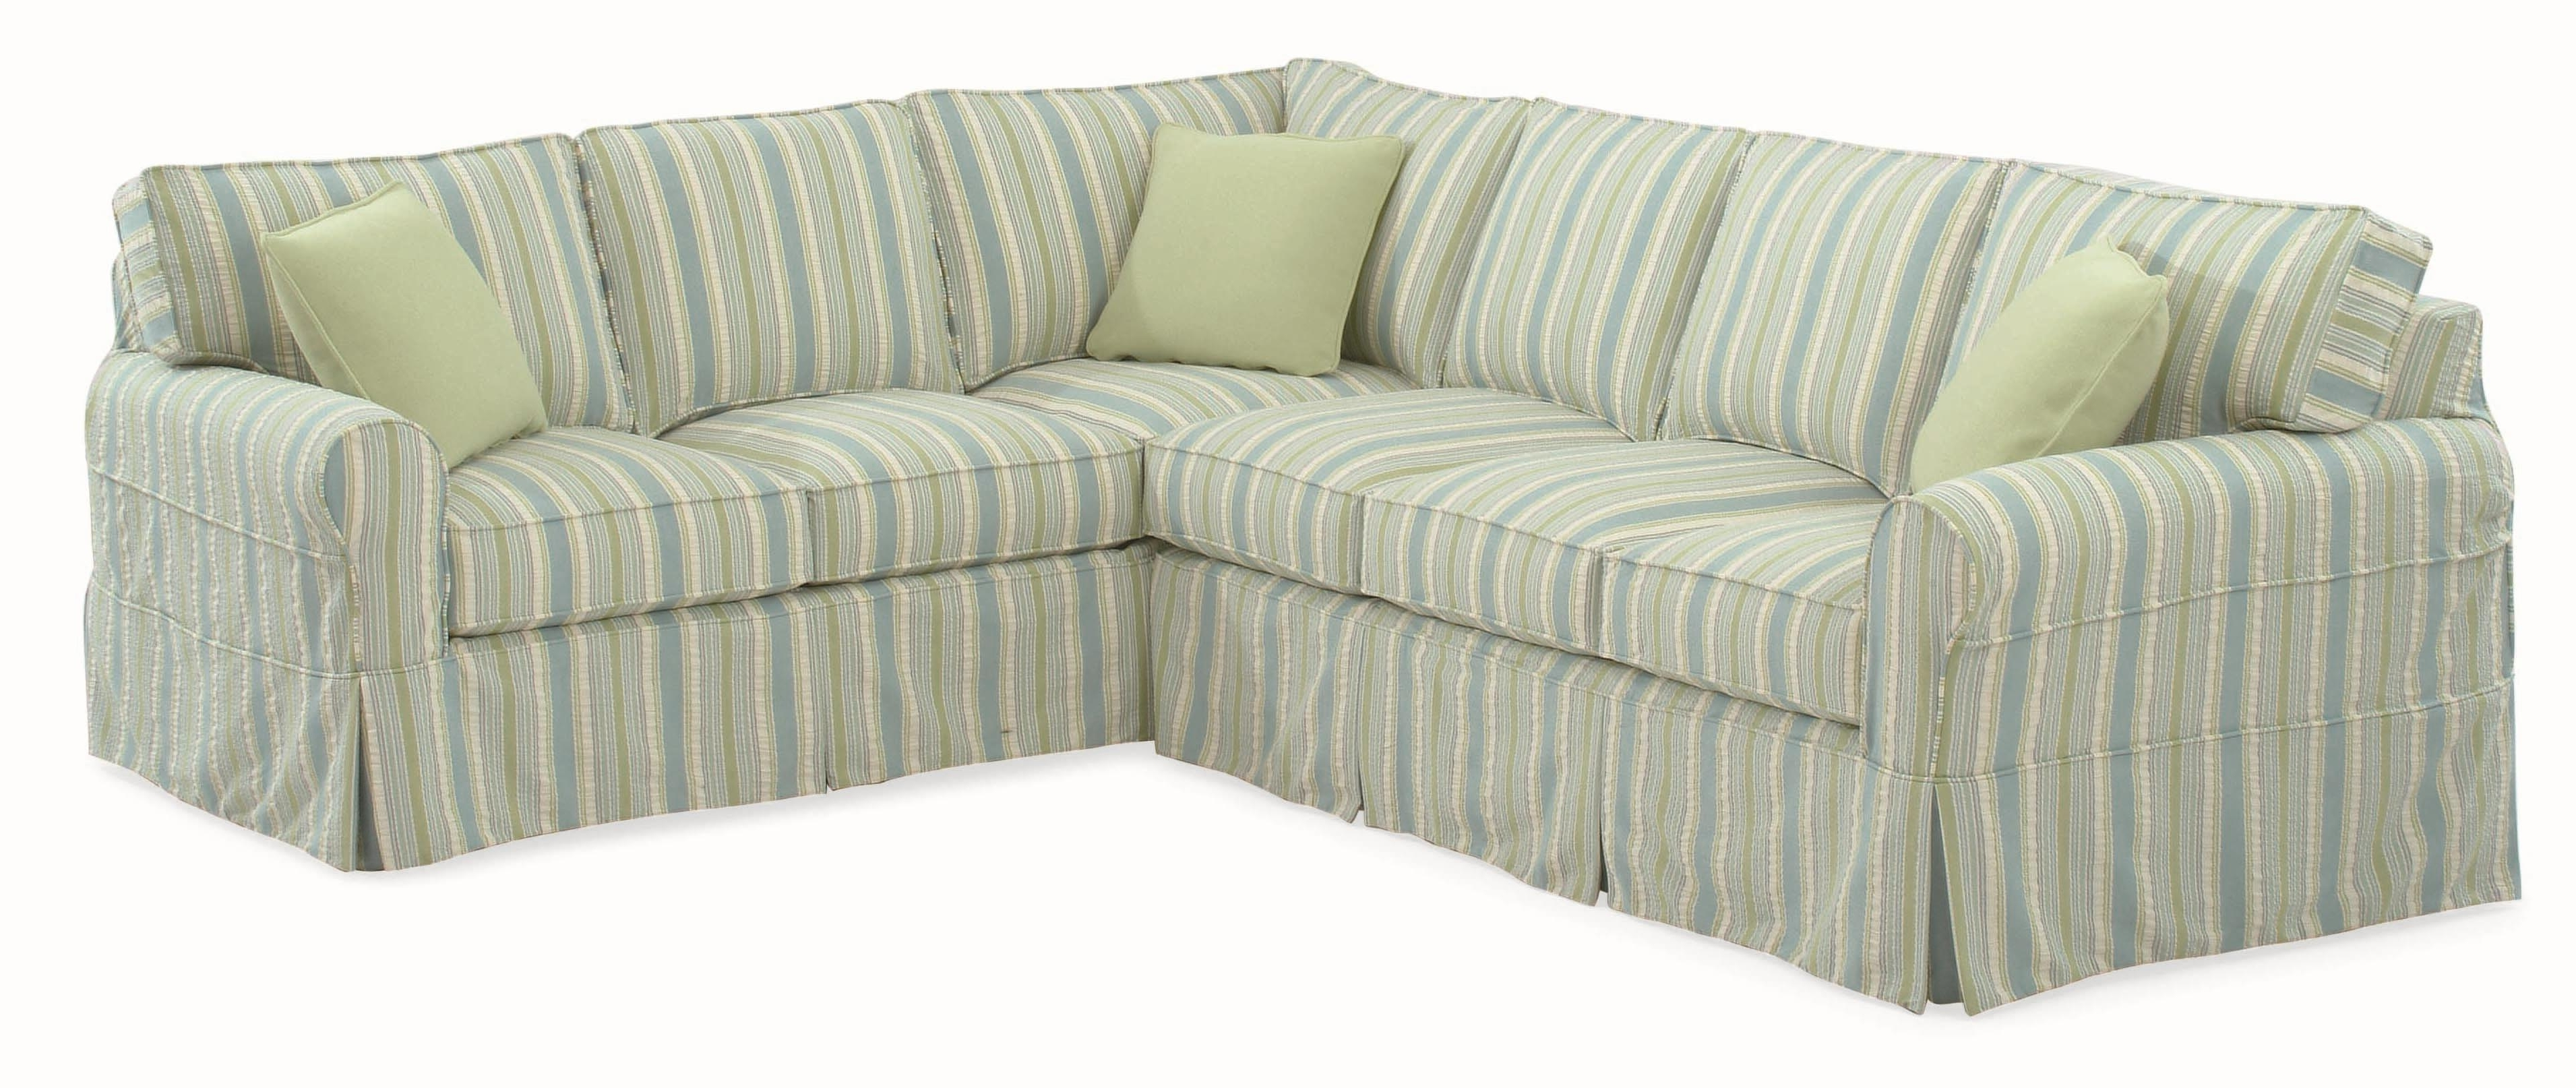 Sectional Sofas At Havertys Throughout Well Known Braxton Culler 728 Casual Sectional Sofa With Rolled Arms And (View 11 of 15)